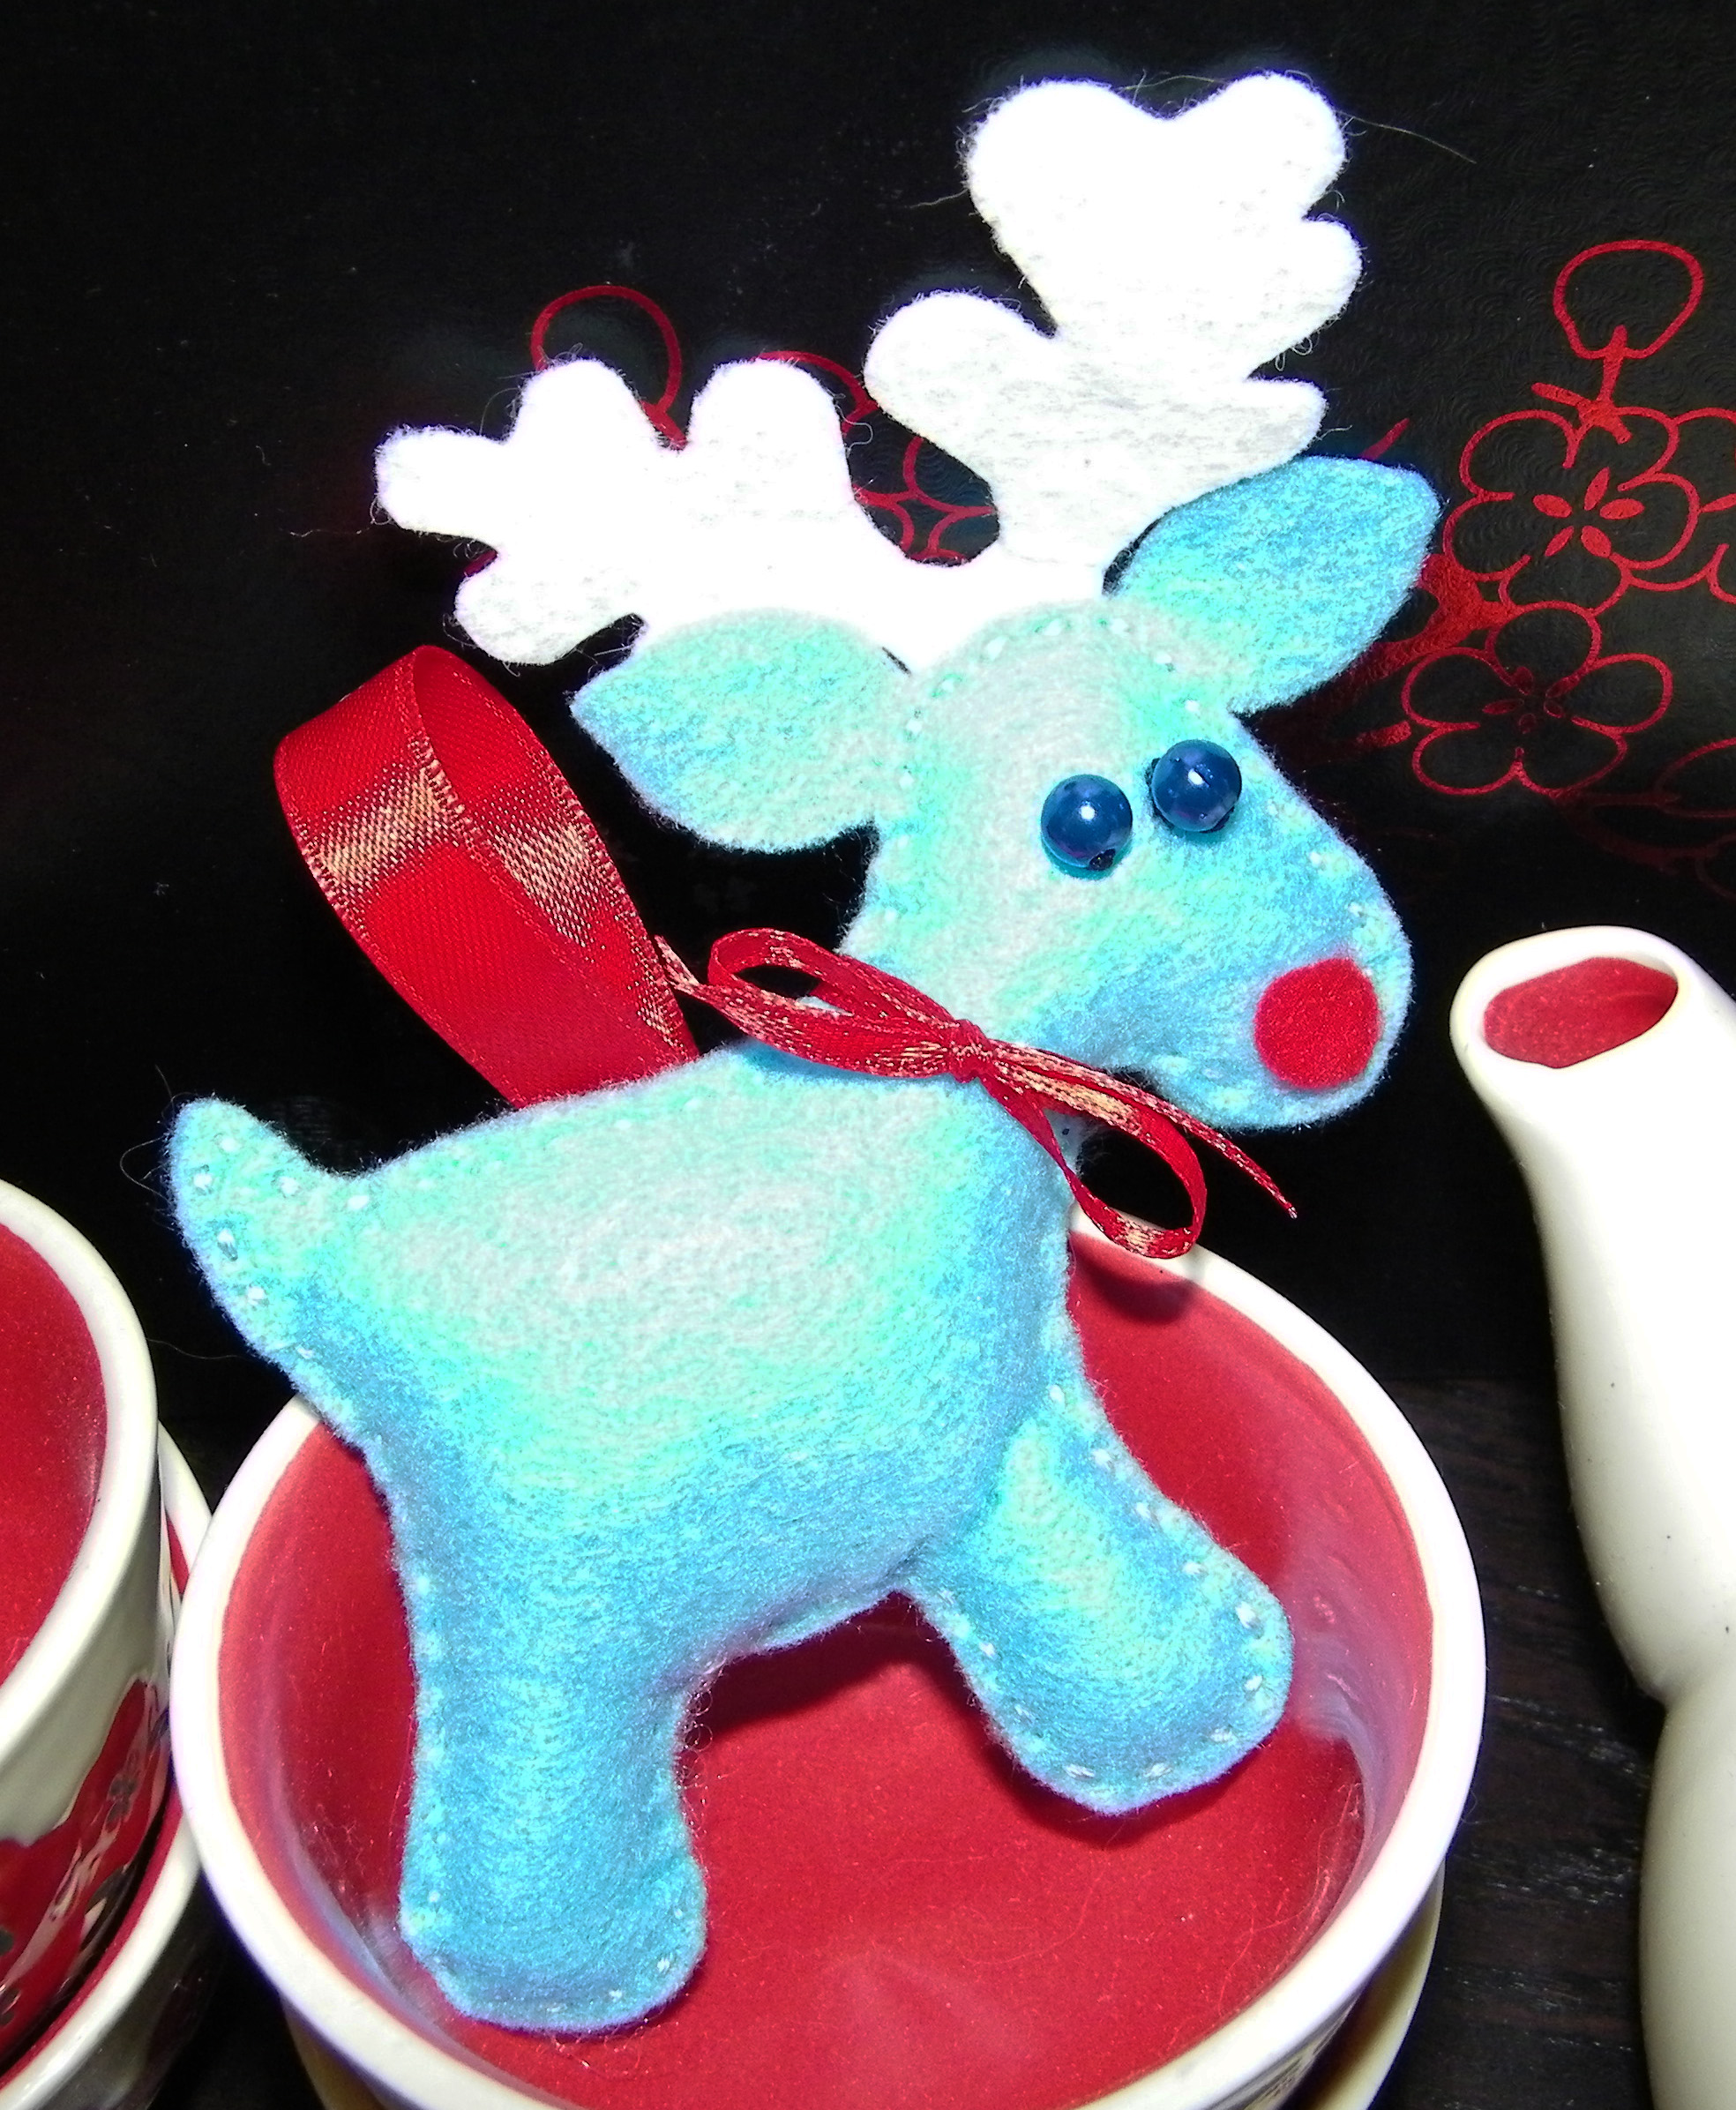 Felt Christmas Reindeer Patterns http://www.pregnancybabychild.com/about/free-downloads/patterns/